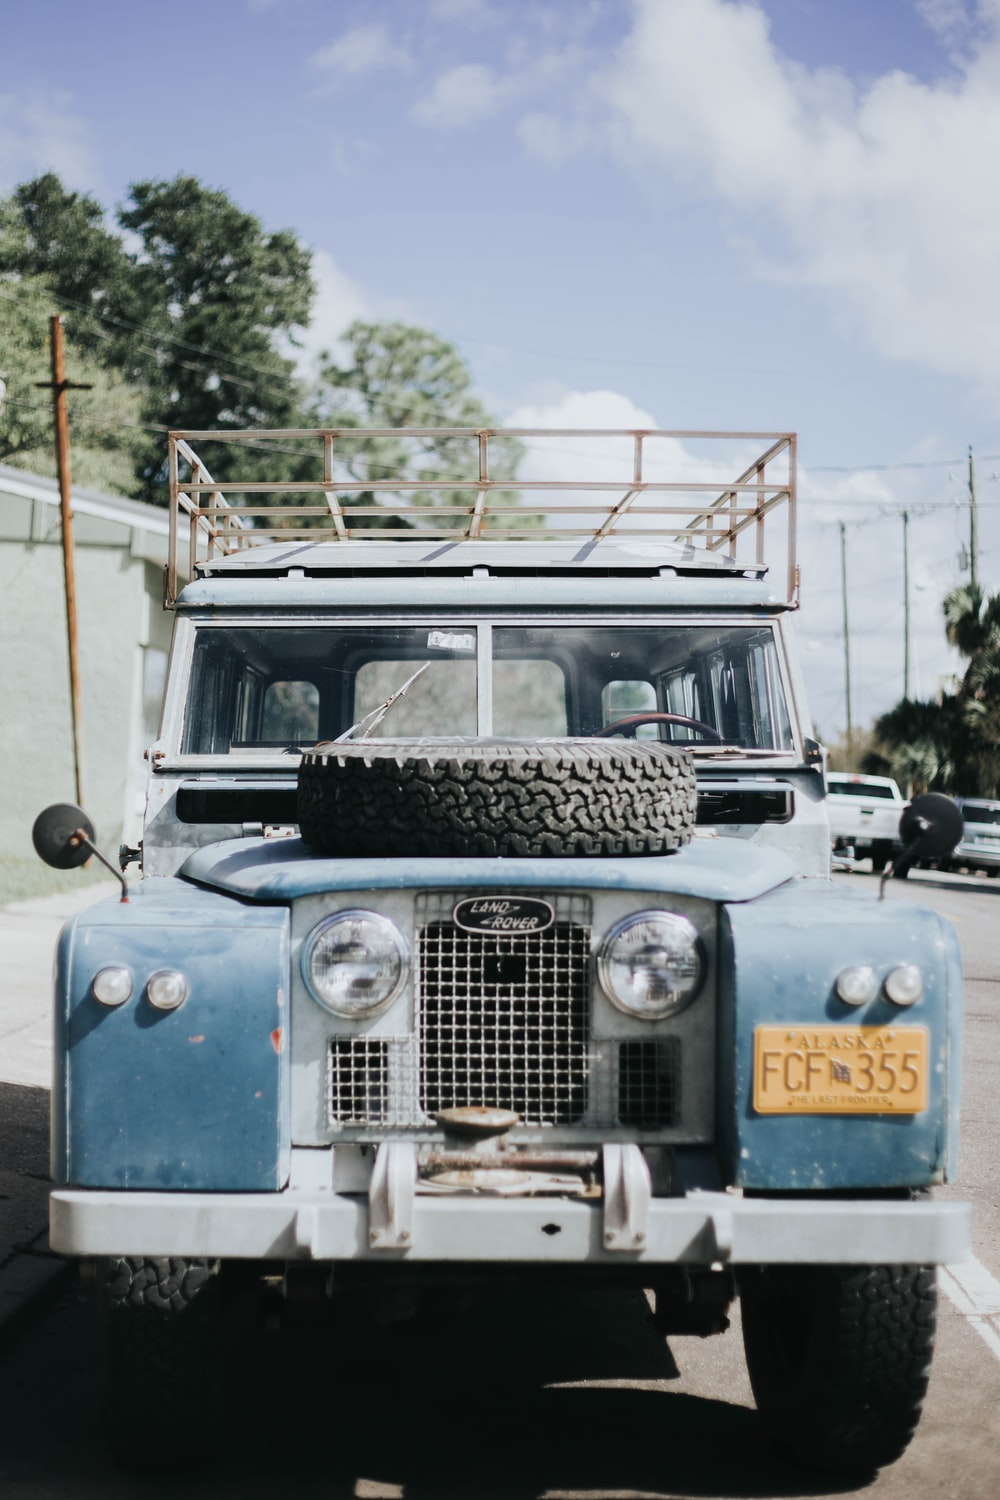 photography of blue vehicle parked on road